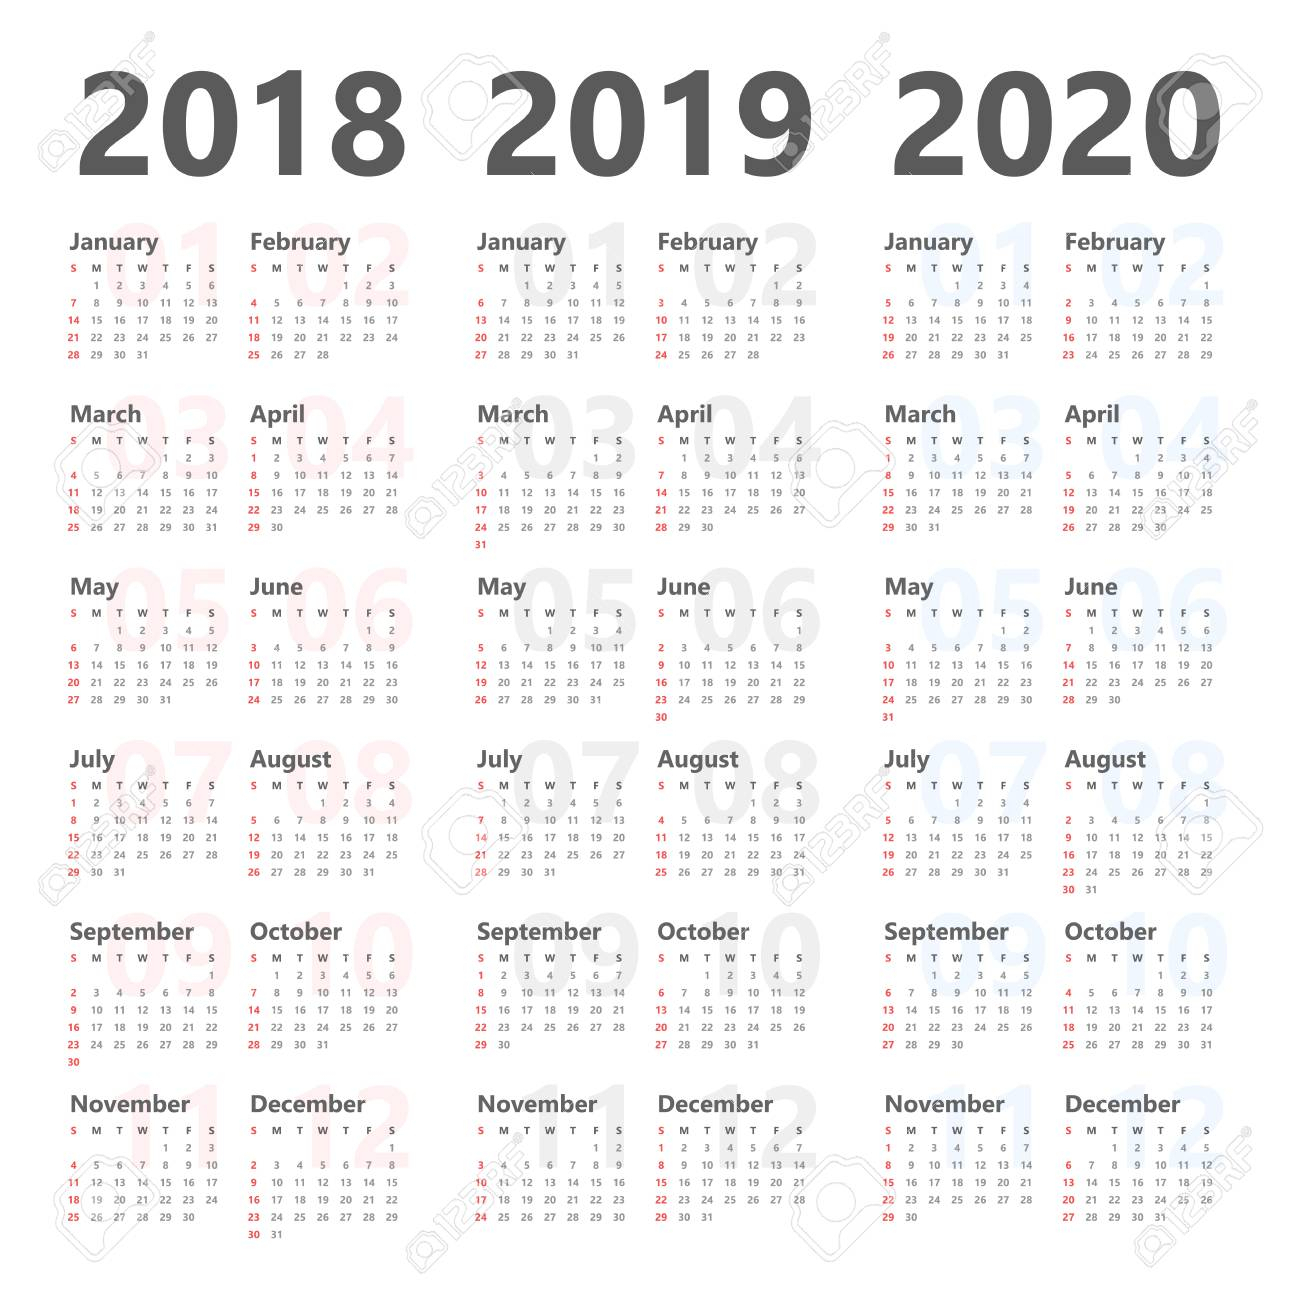 Yearly Calendar Template For 2018 To 2020. in Yearly Calendar 2020 With Boxes